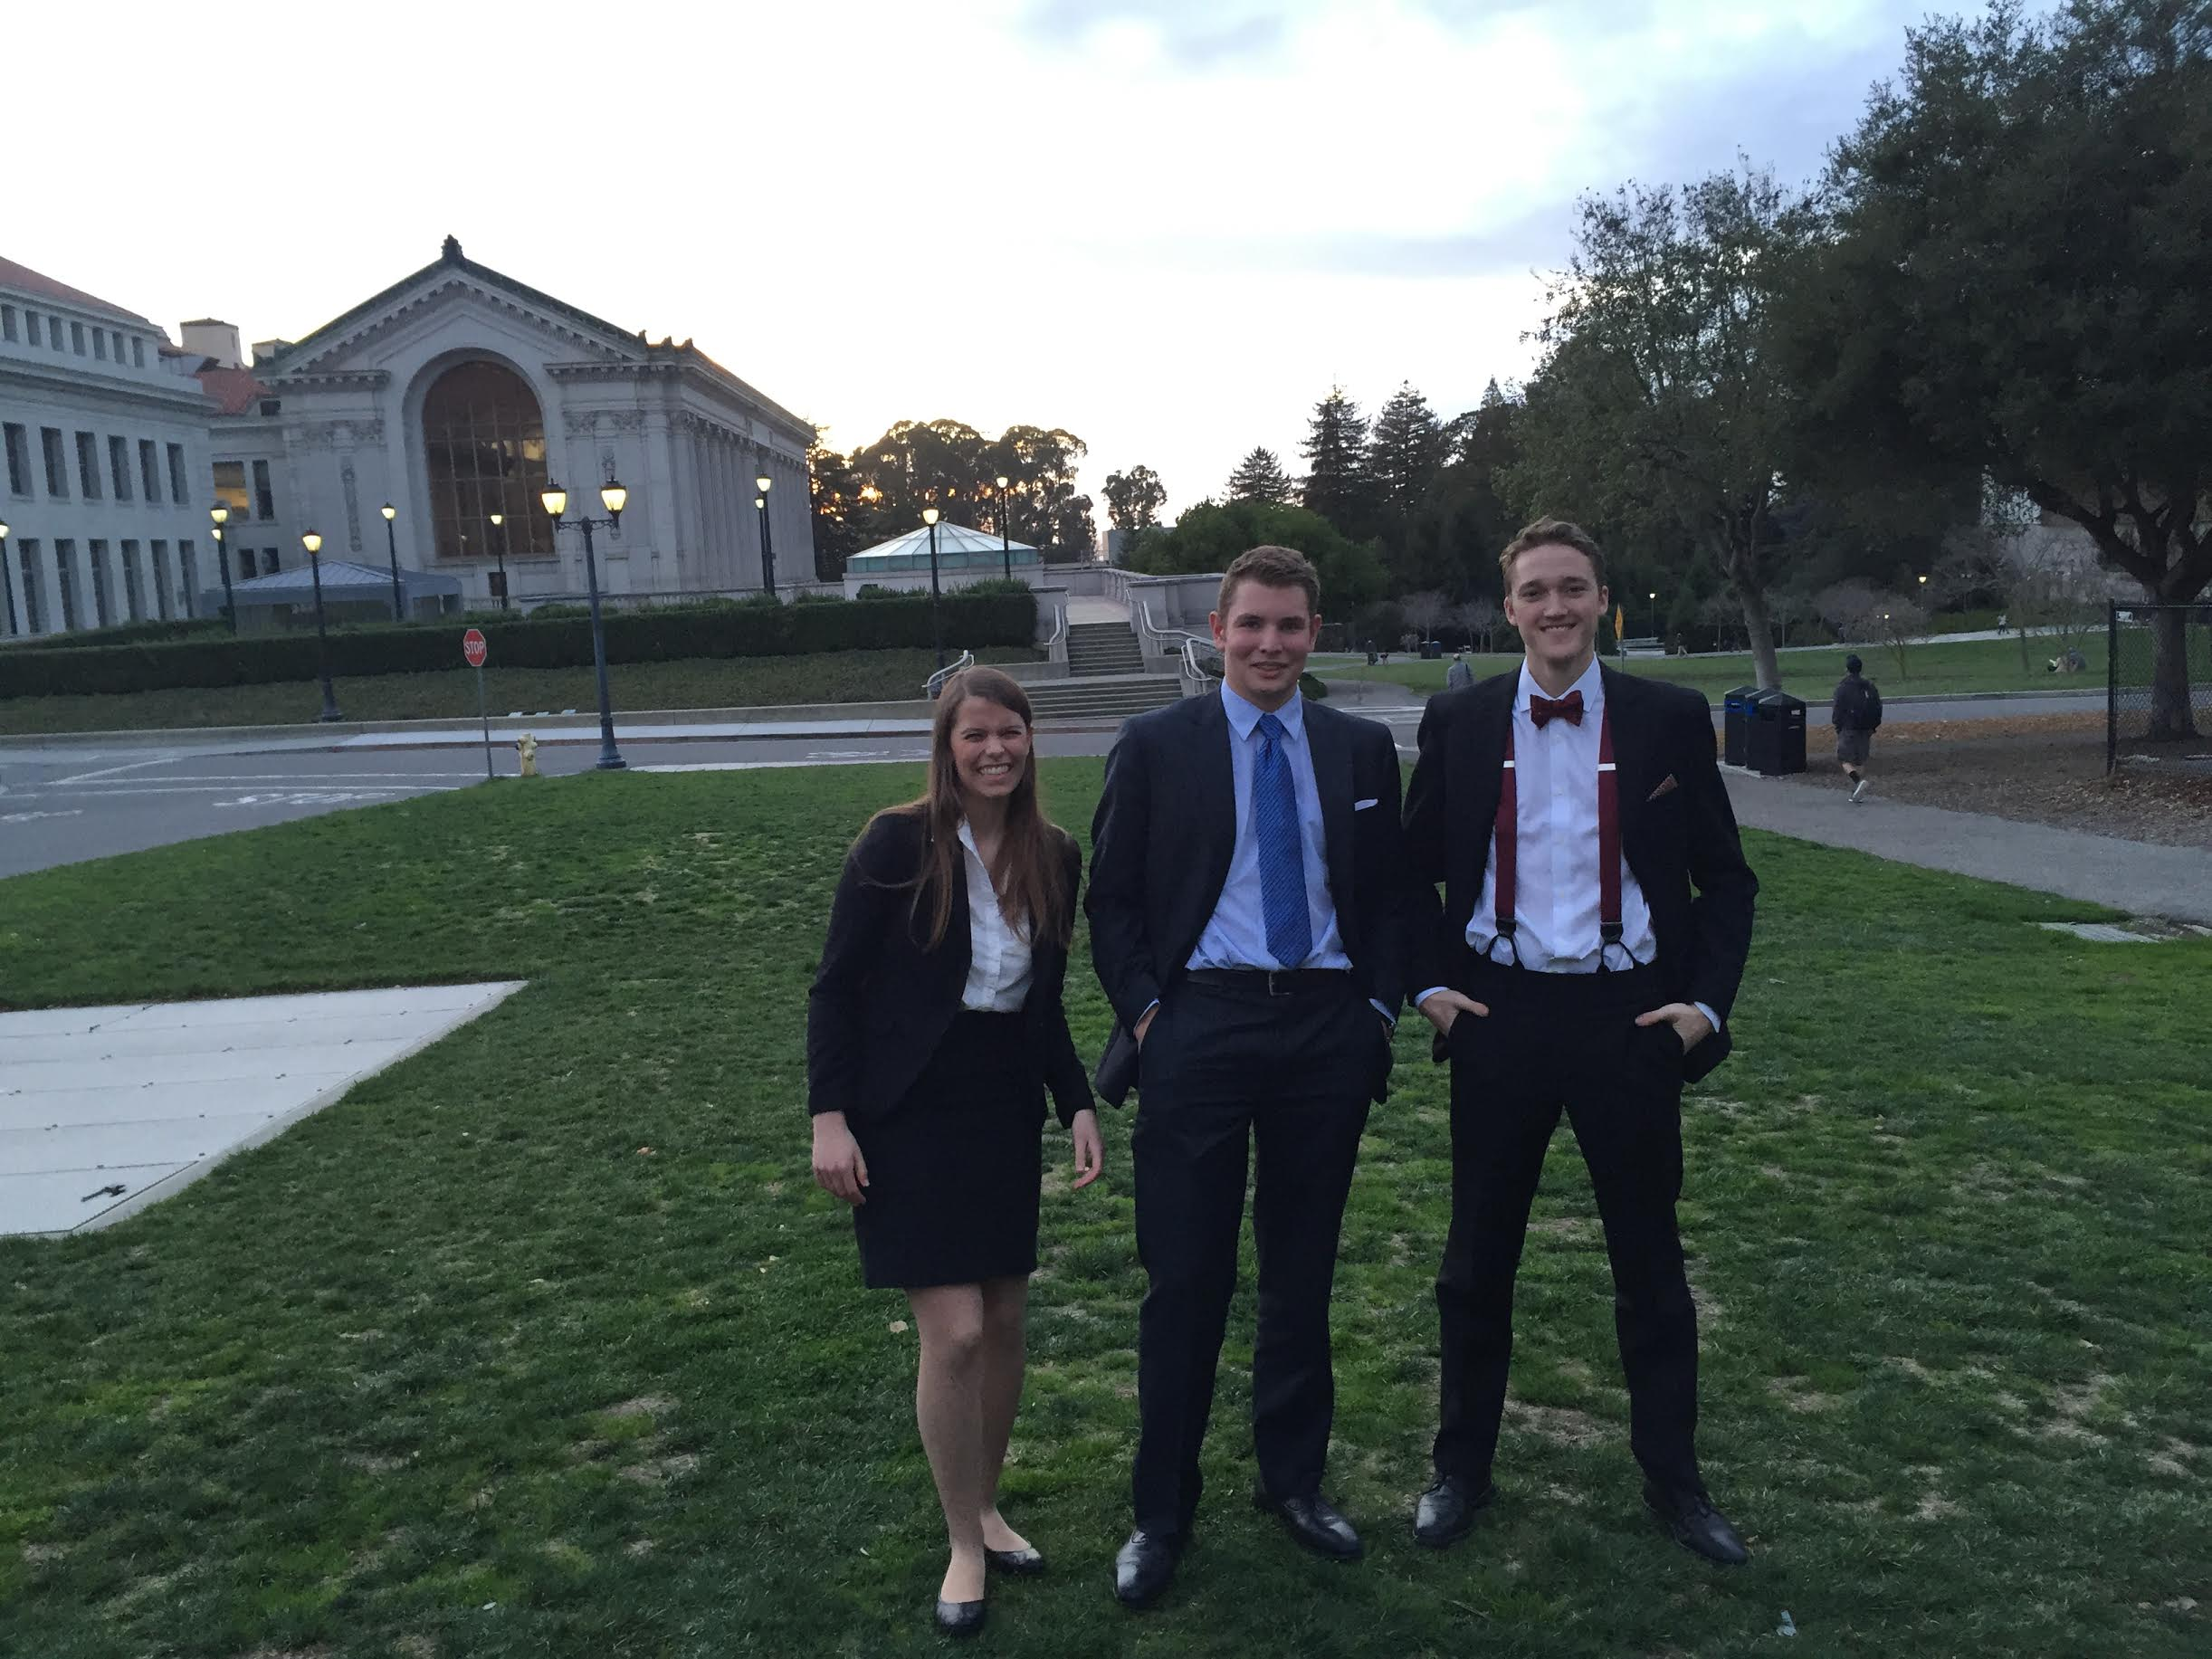 Three Mock Trial Group members posing together